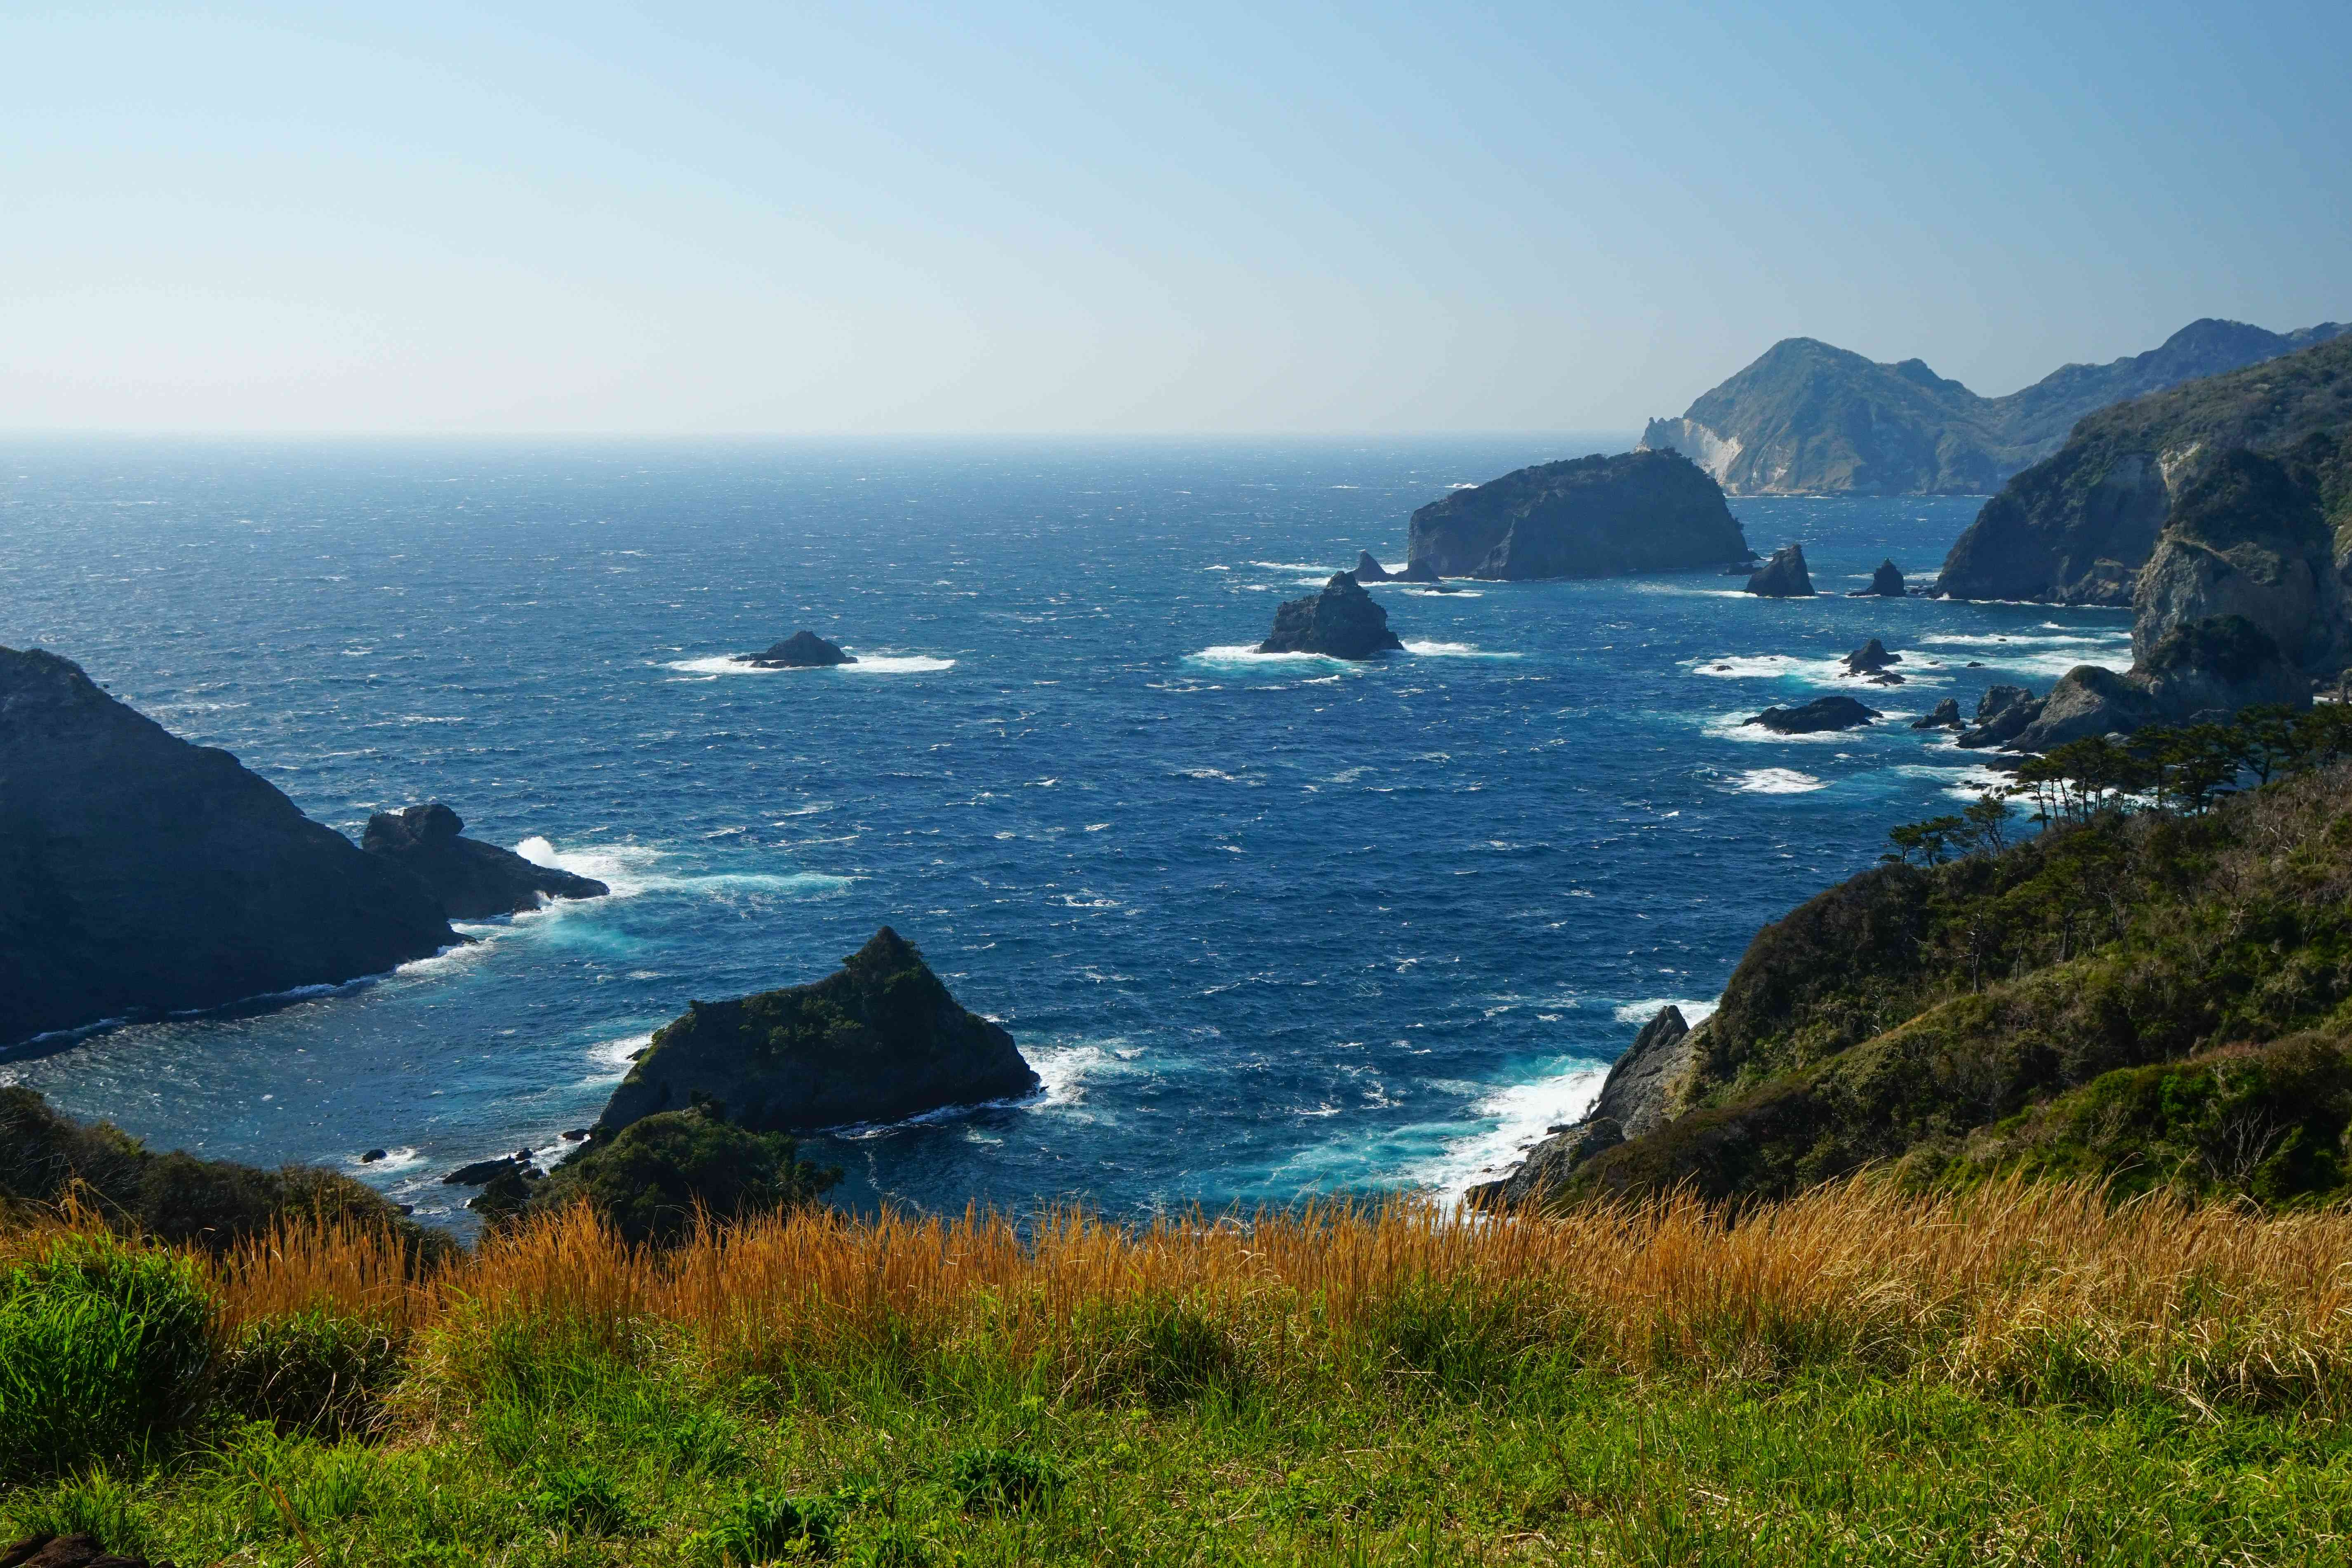 coastline with green grass and rocky formations in background with deep blue ocean water